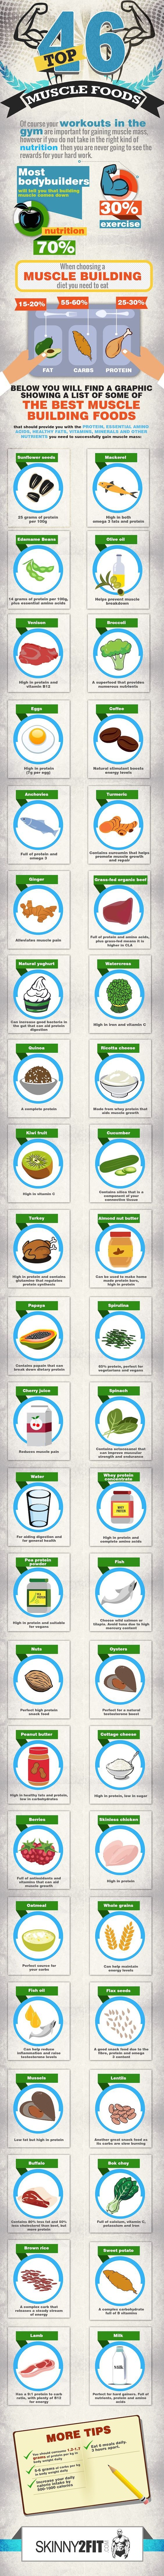 Top muscle foods for building muscle. #buildmuscle #bodybuilding #bodybuilder #muscle